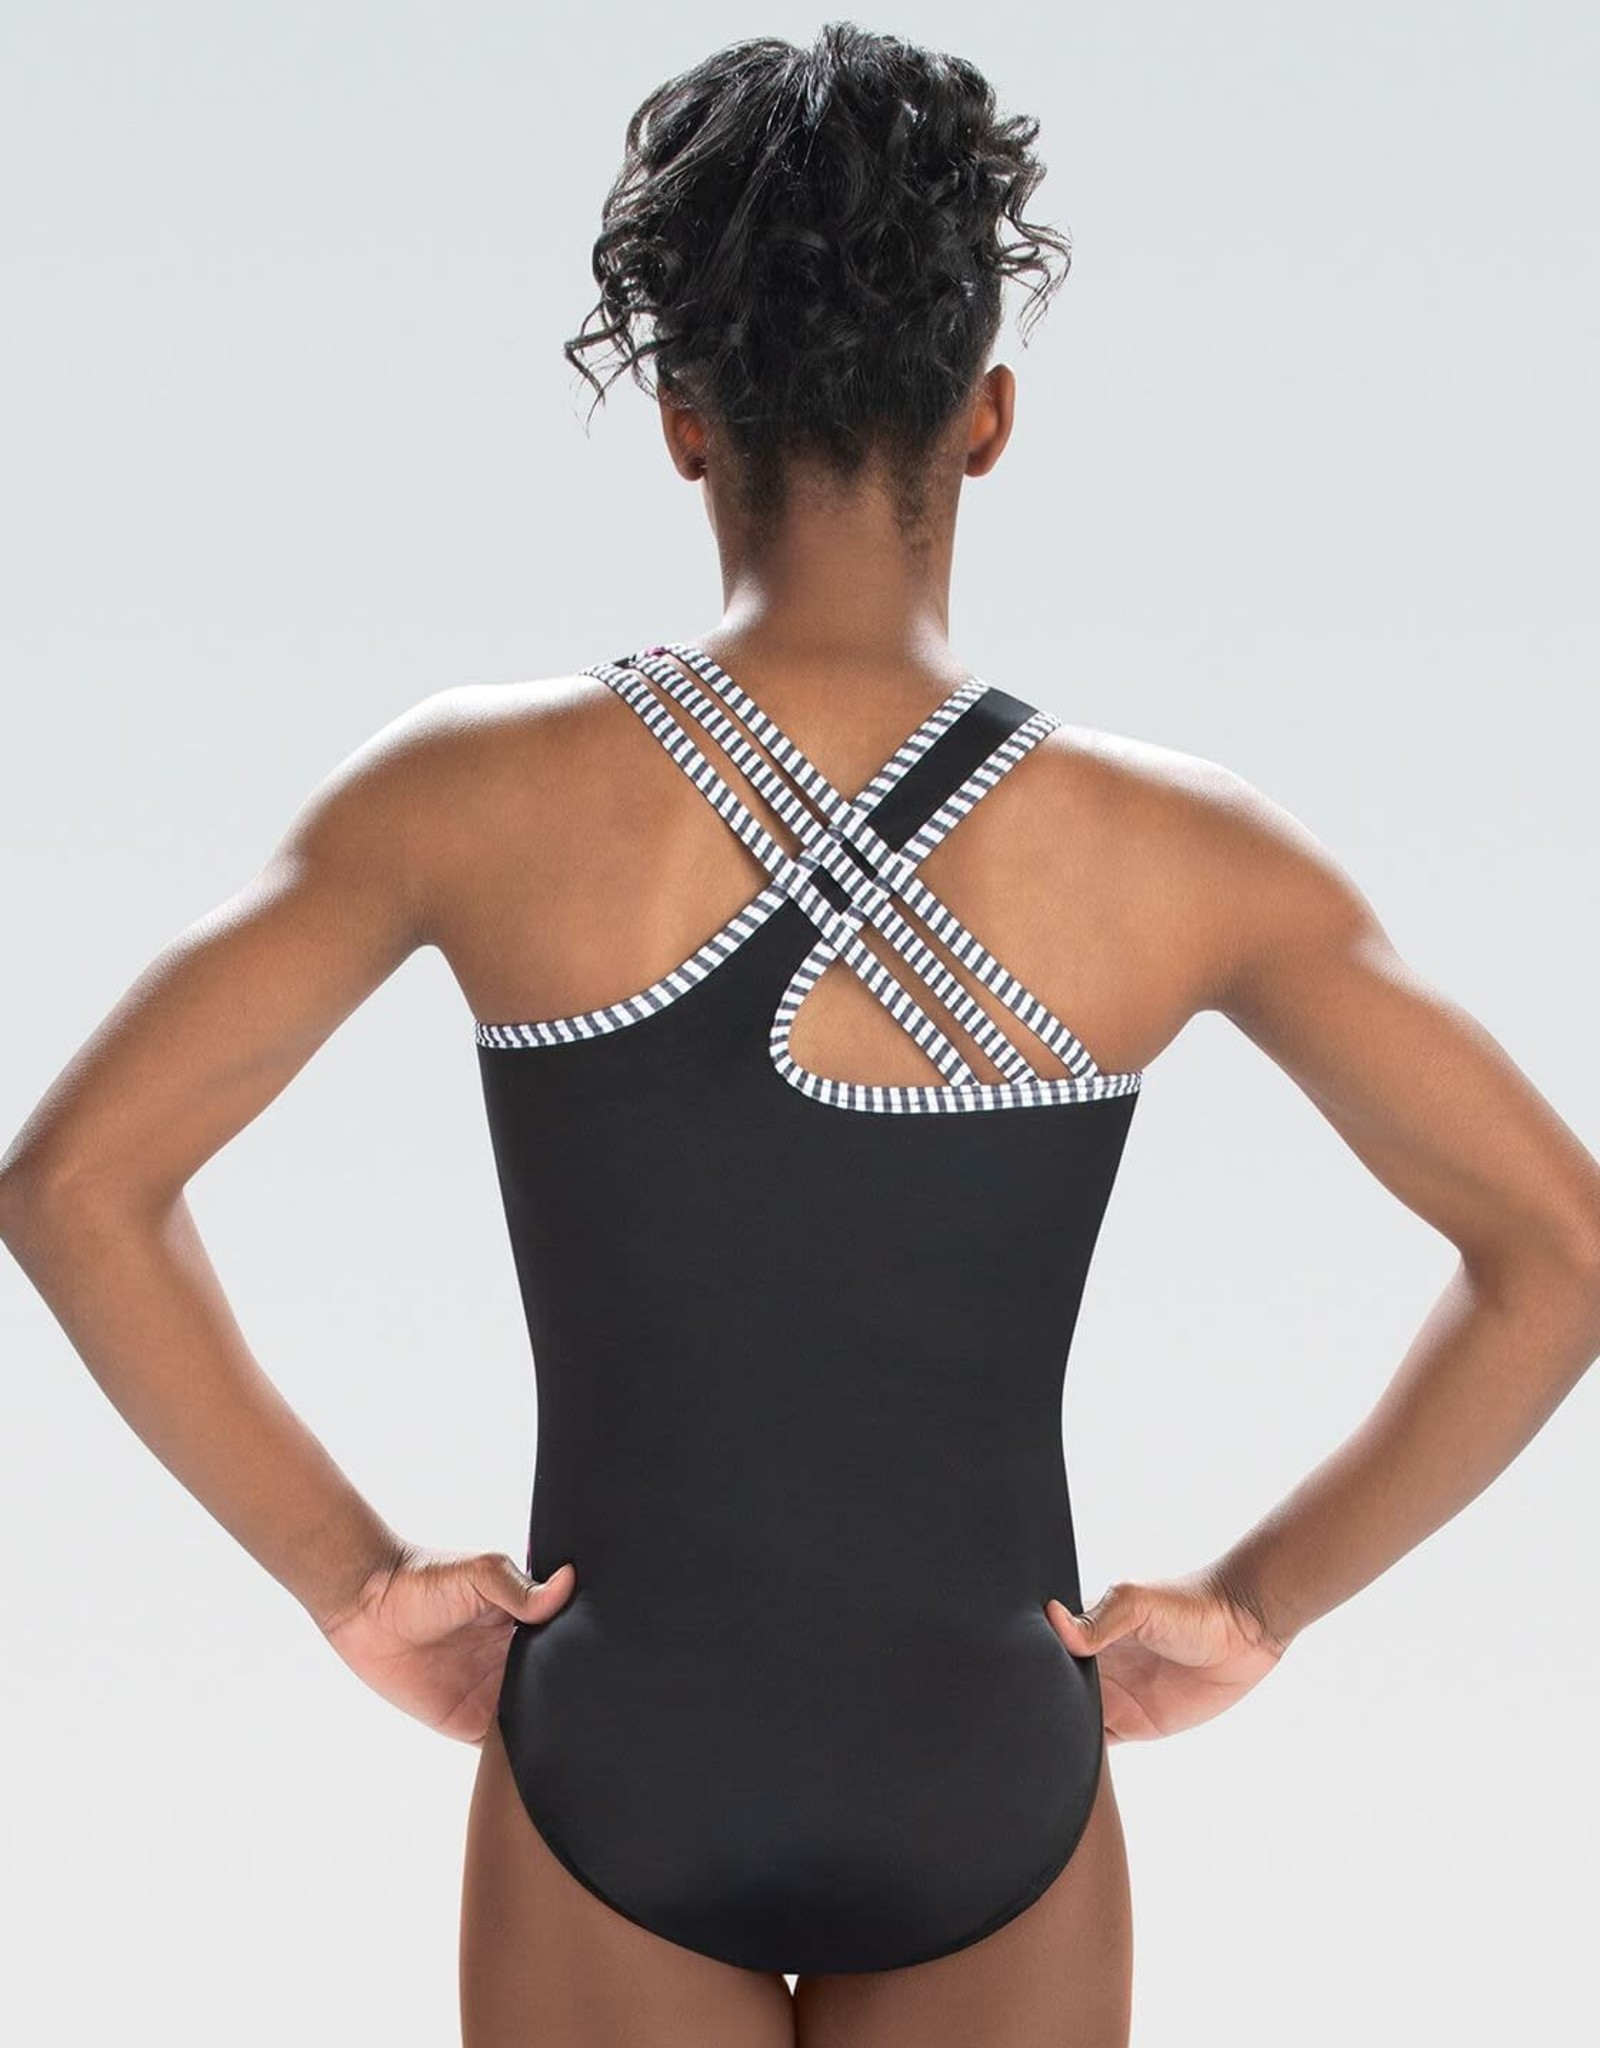 GK Elite E4148- Urban Cheetah Tank Leotard